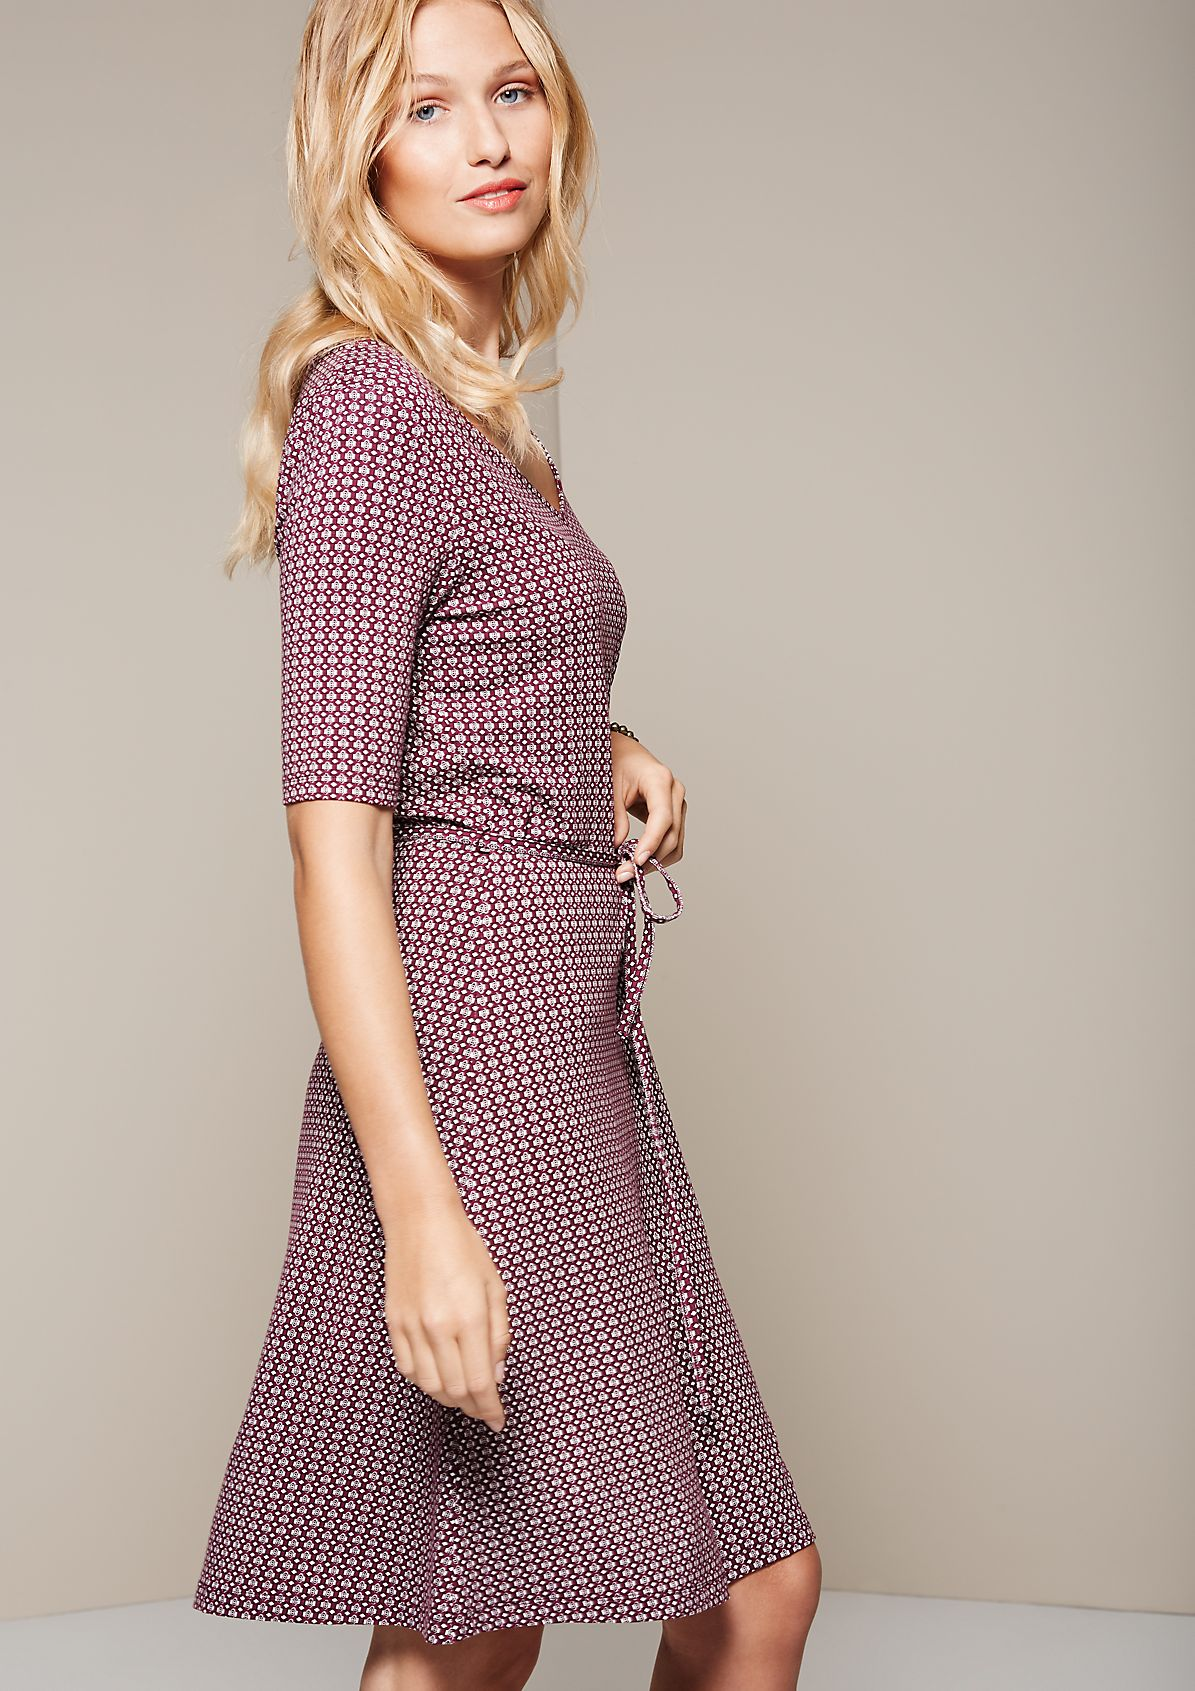 Lightweight short sleeve dress with a fine minimalist print from s.Oliver